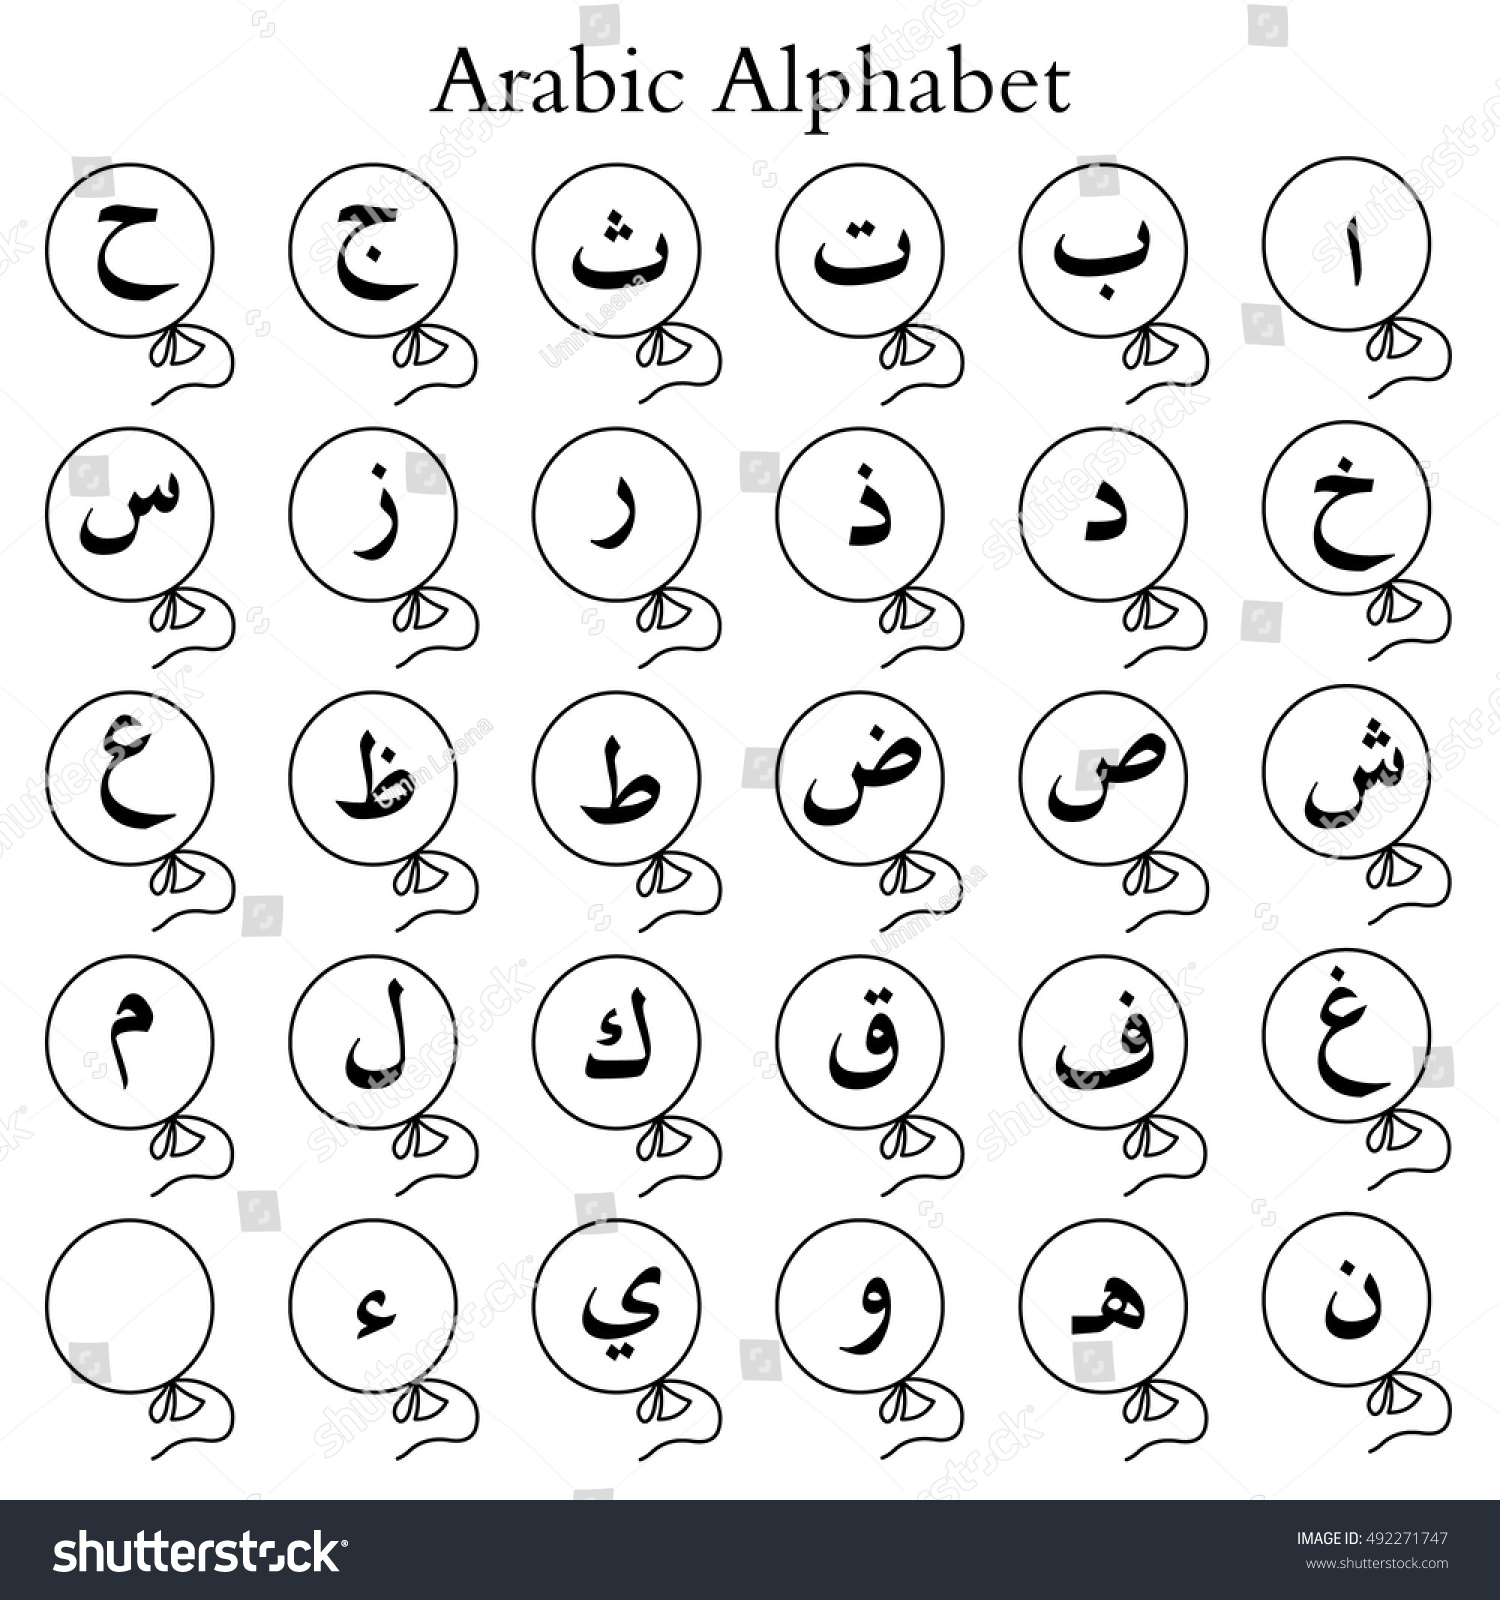 Arabic Alphabet On Balloons Coloring Kids Stock Vector Royalty Free 492271747